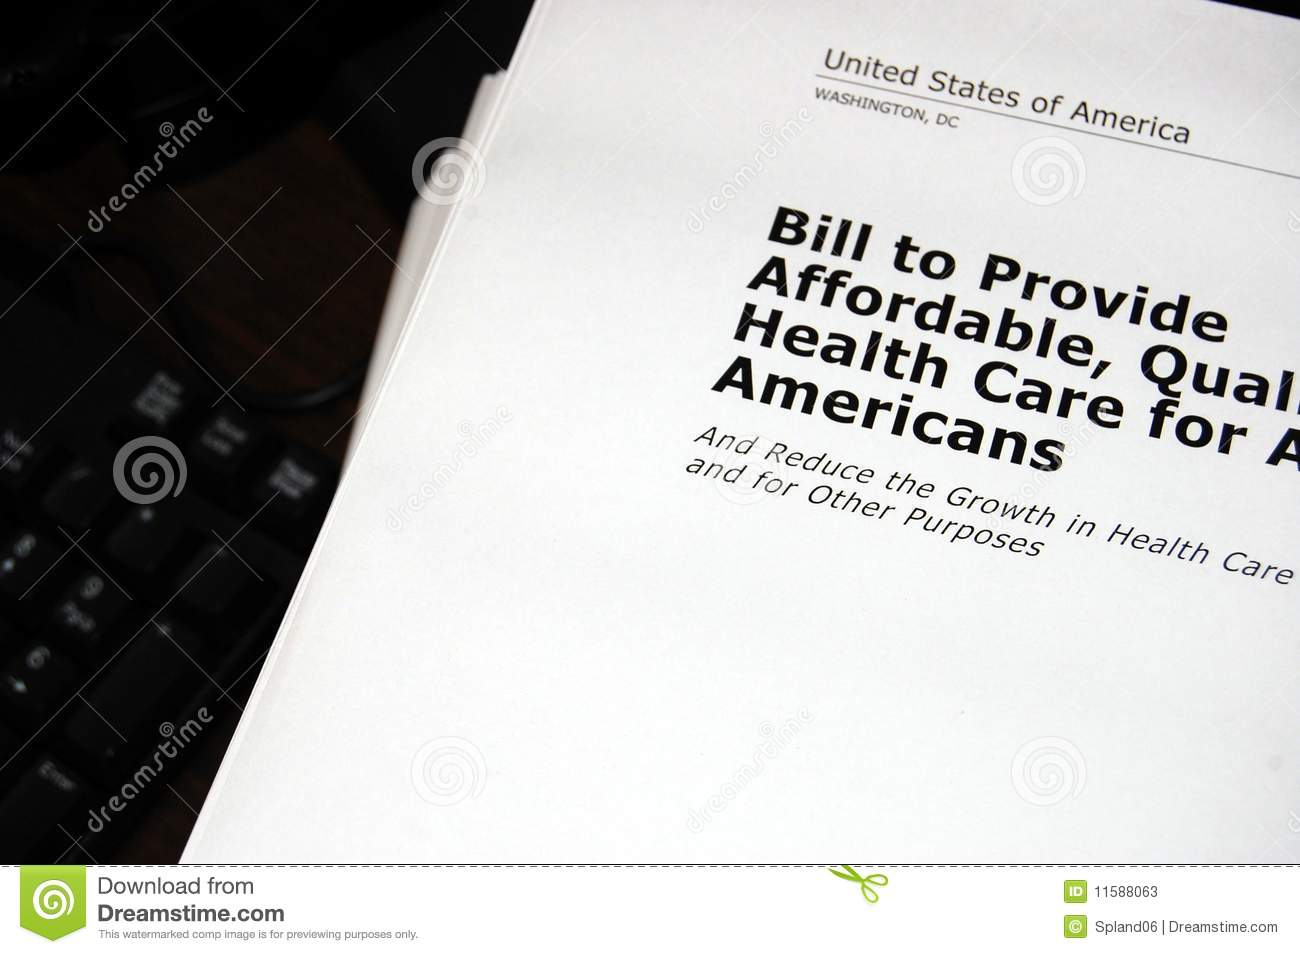 essays on health care reform bill The healthcare reform/affordable care act was passed by congress, and signed into law by president obama on march 23, 2010 by a vote of 219 to 212, the house of representatives passed the health care reform bill.